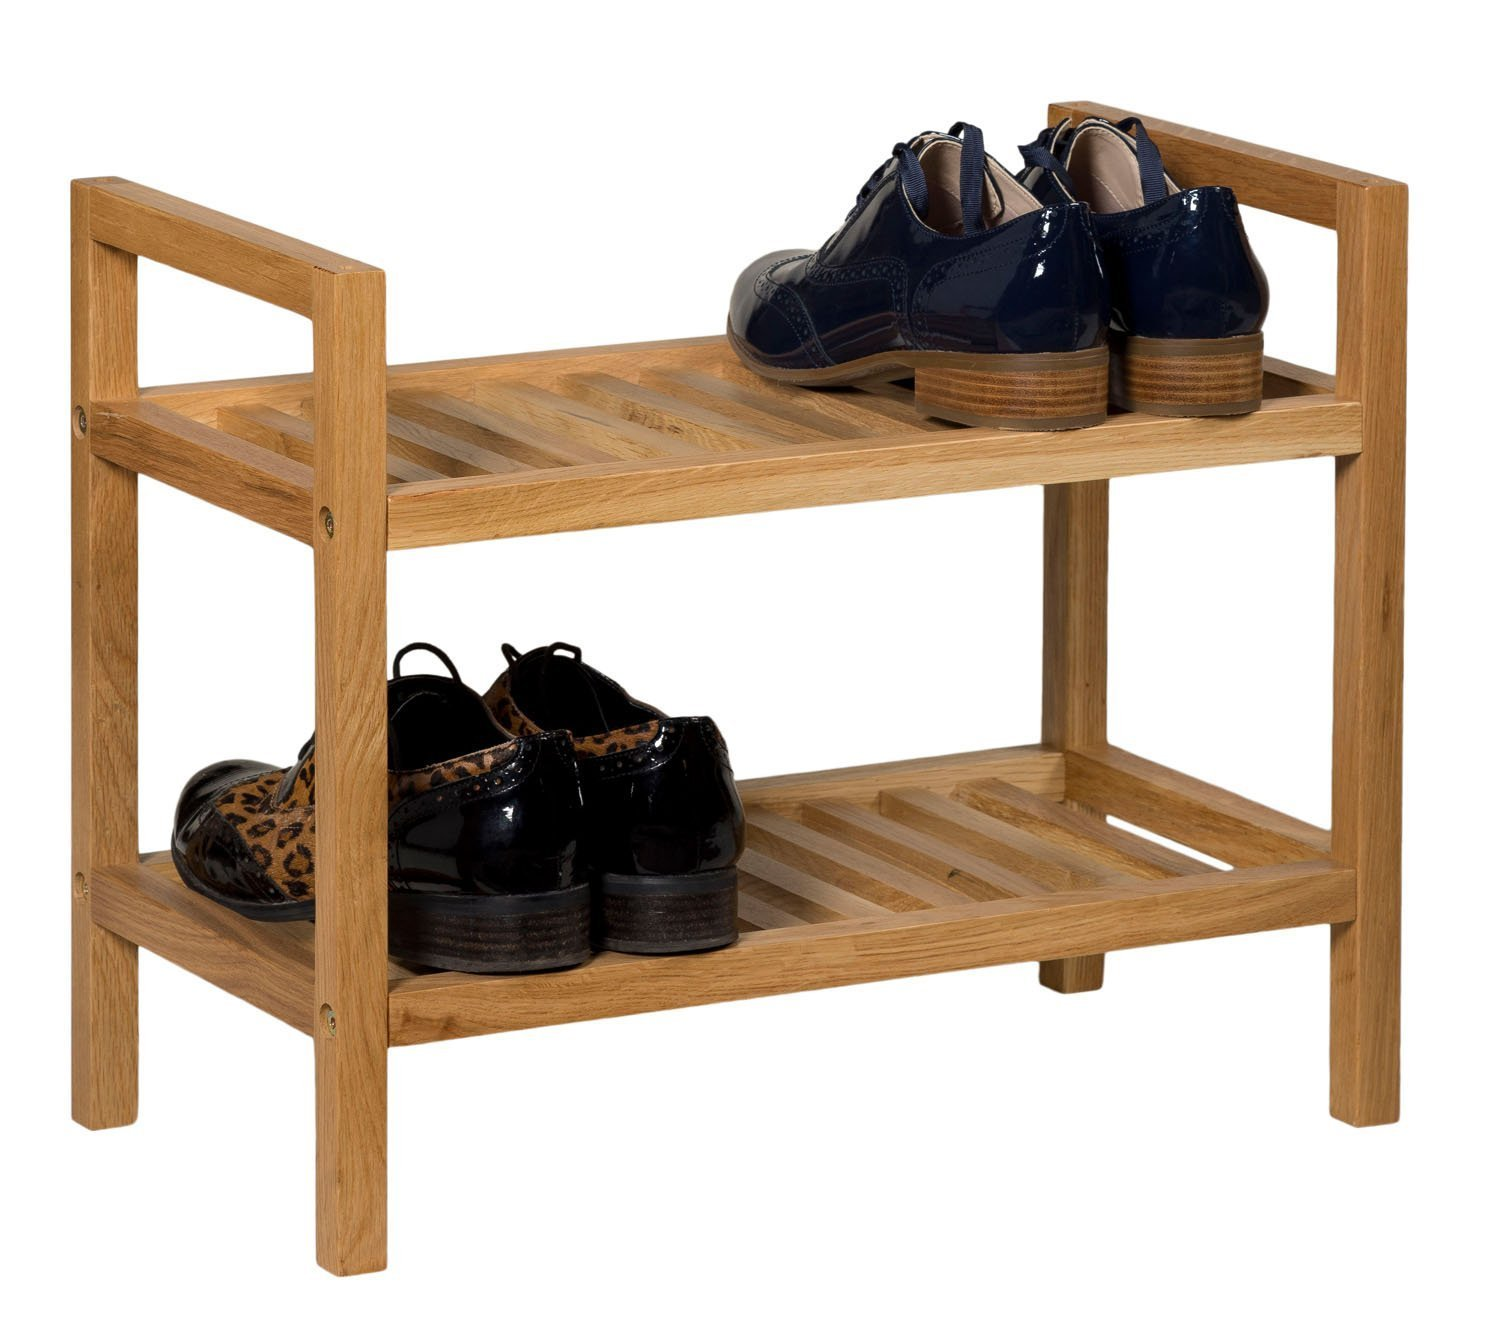 Solid Wood Oak Shoe Rack Organizer with 2 Shelves Hallway Wooden Small Stackable Shoes Storage Stand 2 Tier Fits 4 Pairs Rustic Country Farmhouse Design Space Saving Hall 2 Tiers Home Durable Brown